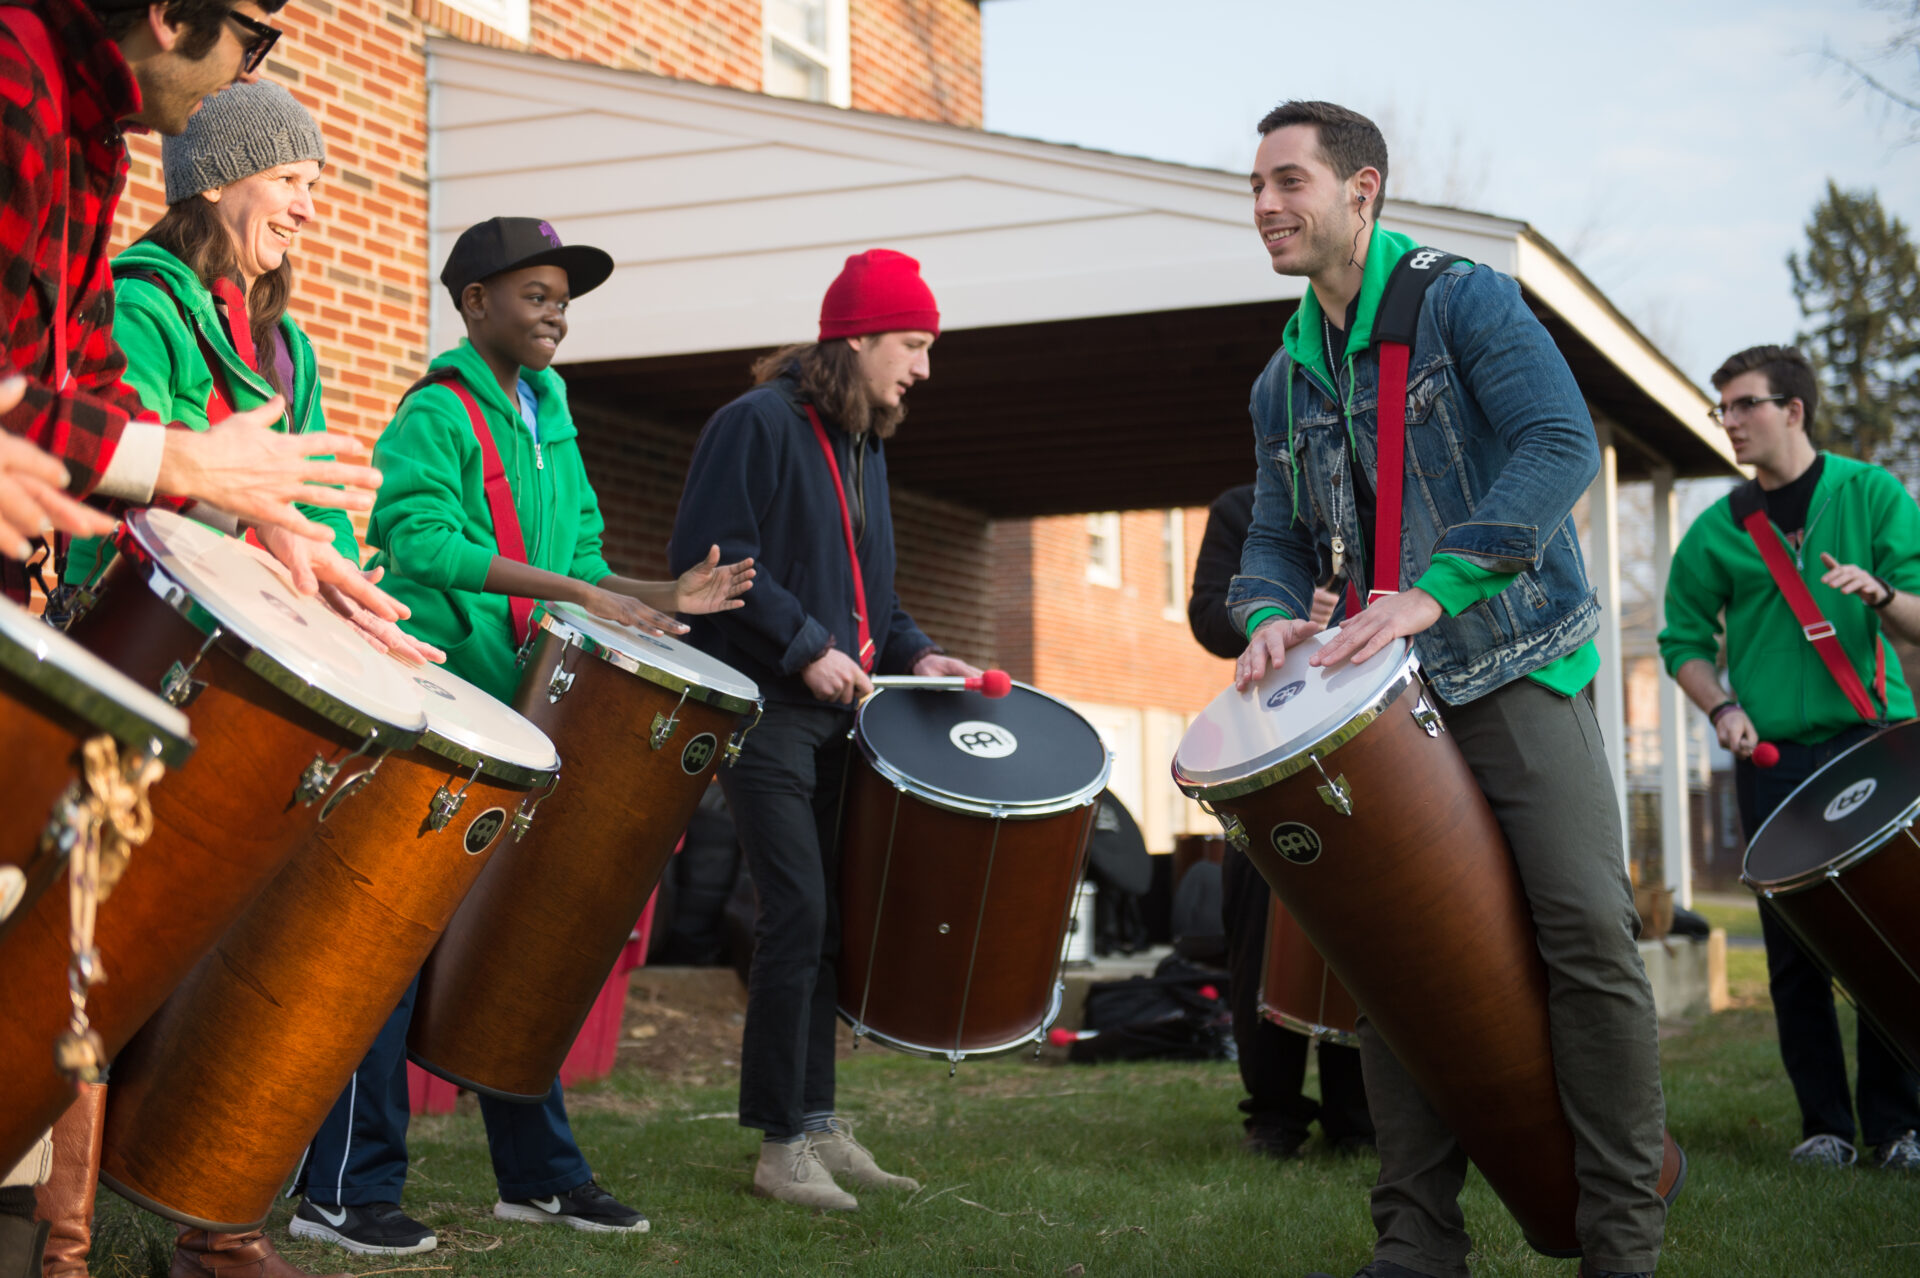 AJ Merlino plays percussion with students from the Reading Samba School.